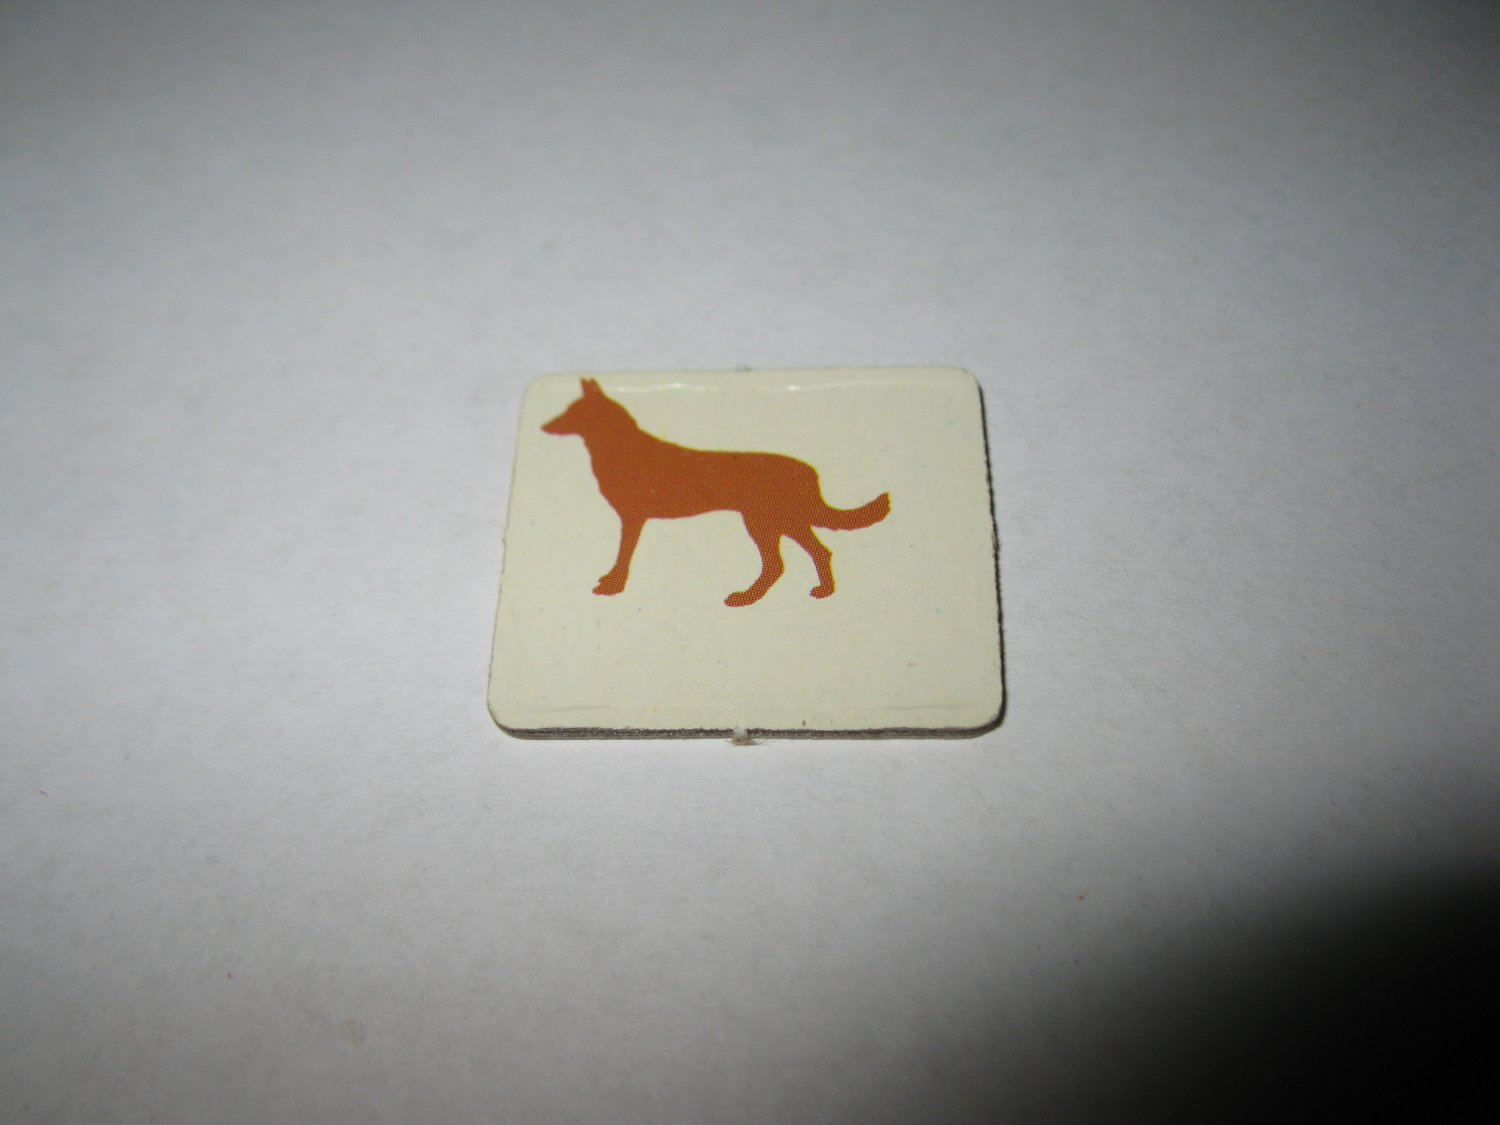 1983 Scavenger Hunt Board Game Piece: single square Dog Tab